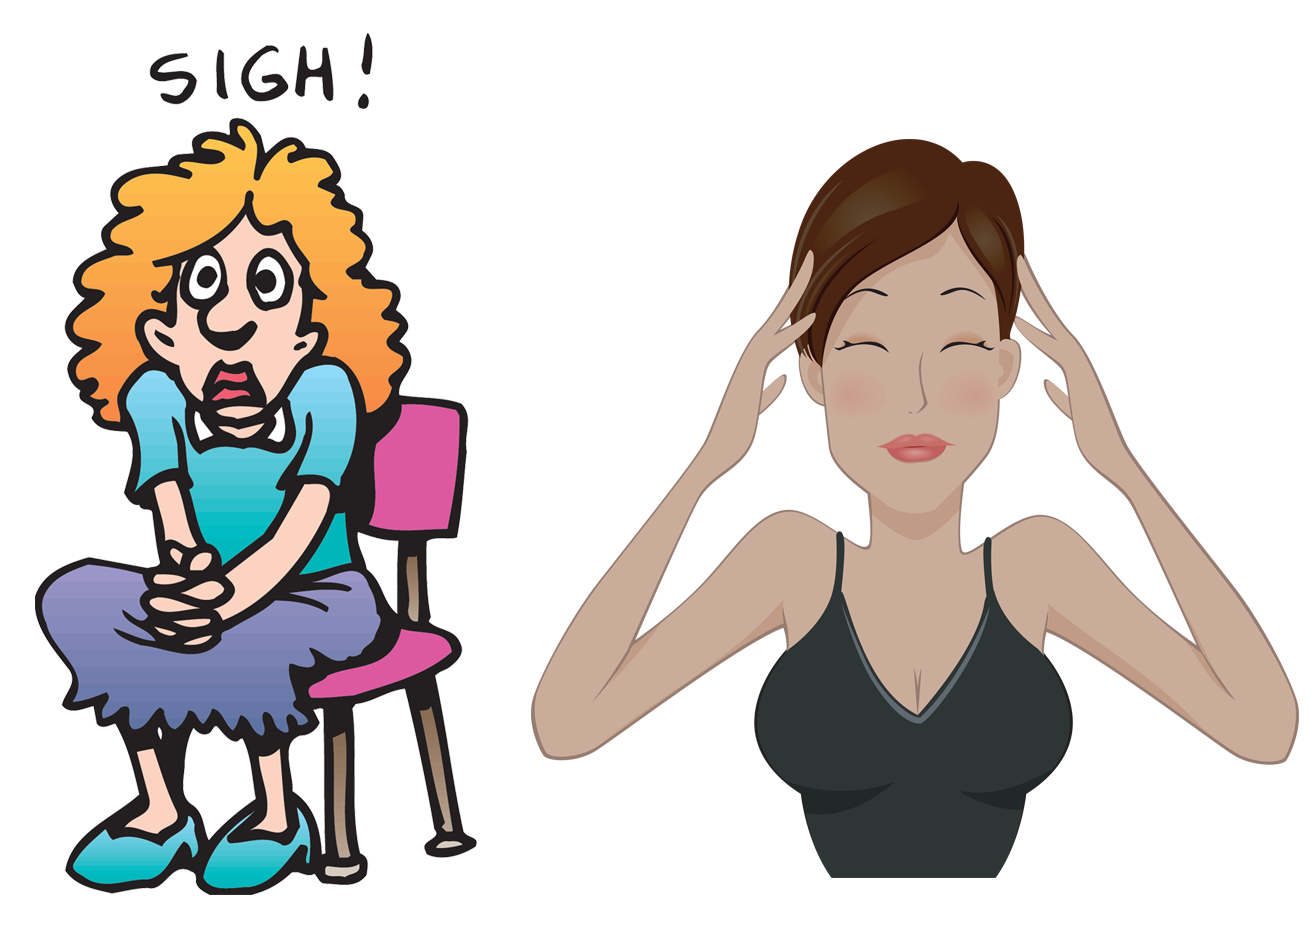 Scary clipart stressed person #7